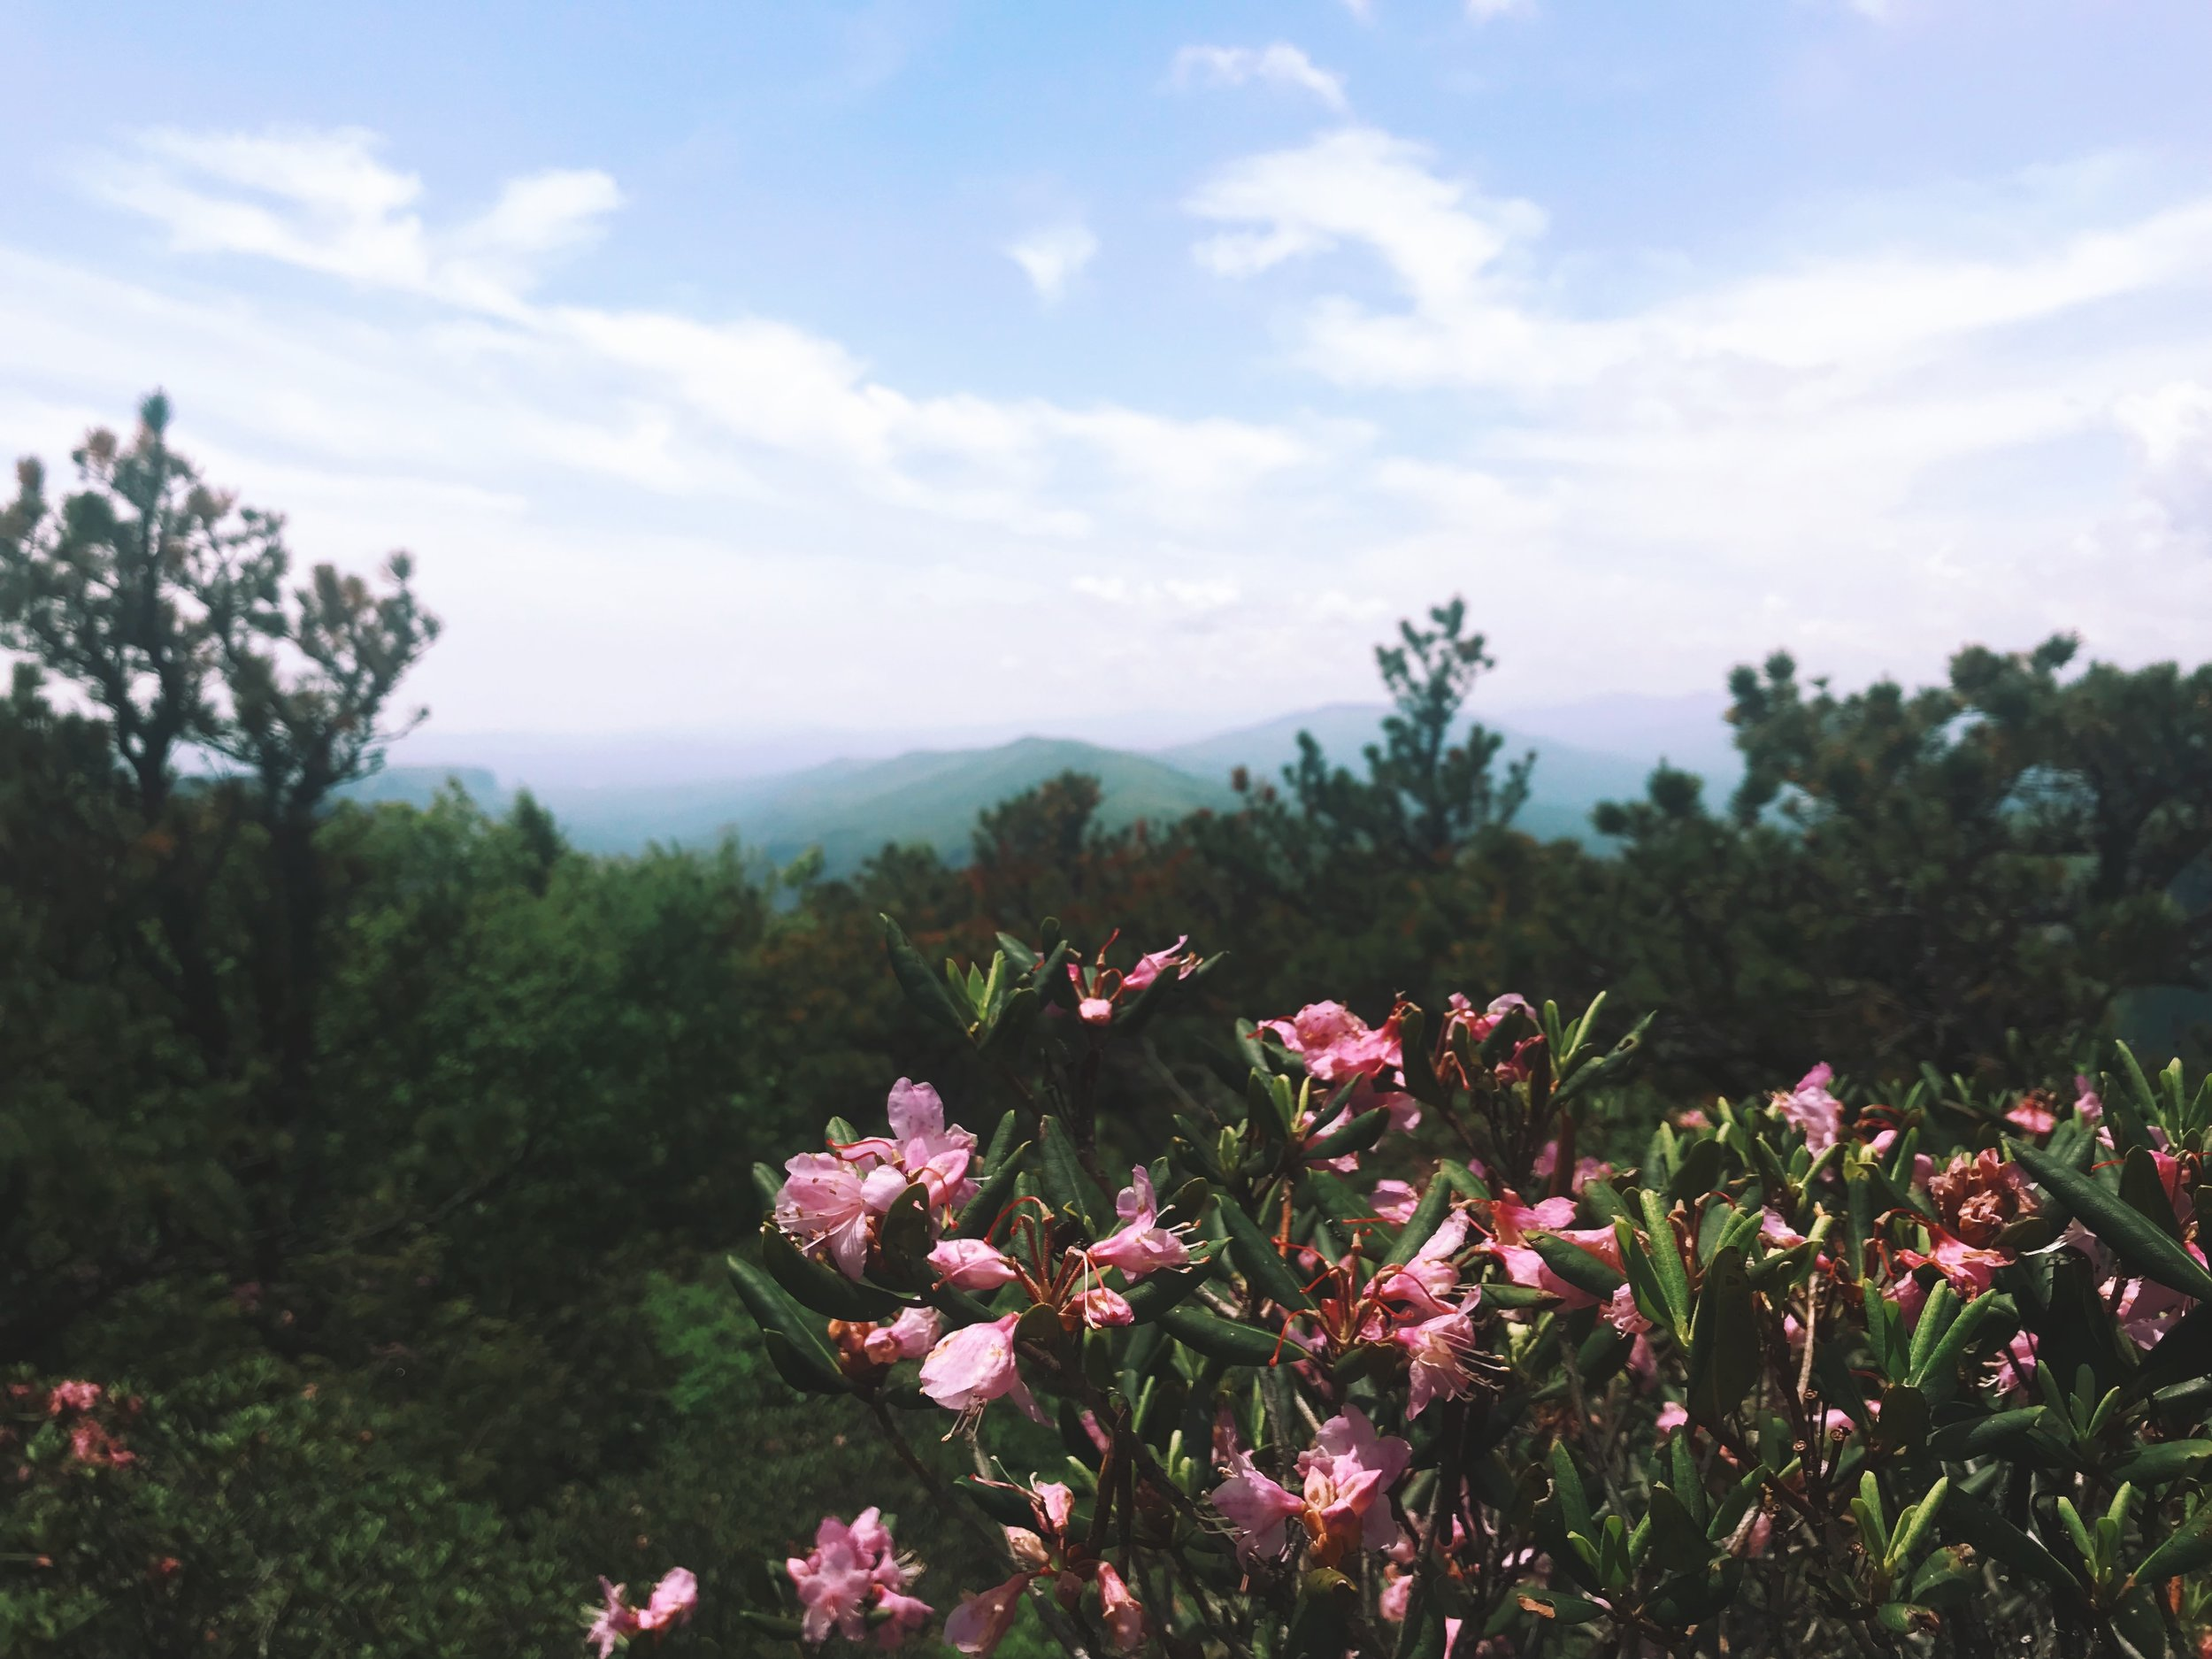 The colors of the rhododendron against the blue ridges GETS ME EVERYTIME